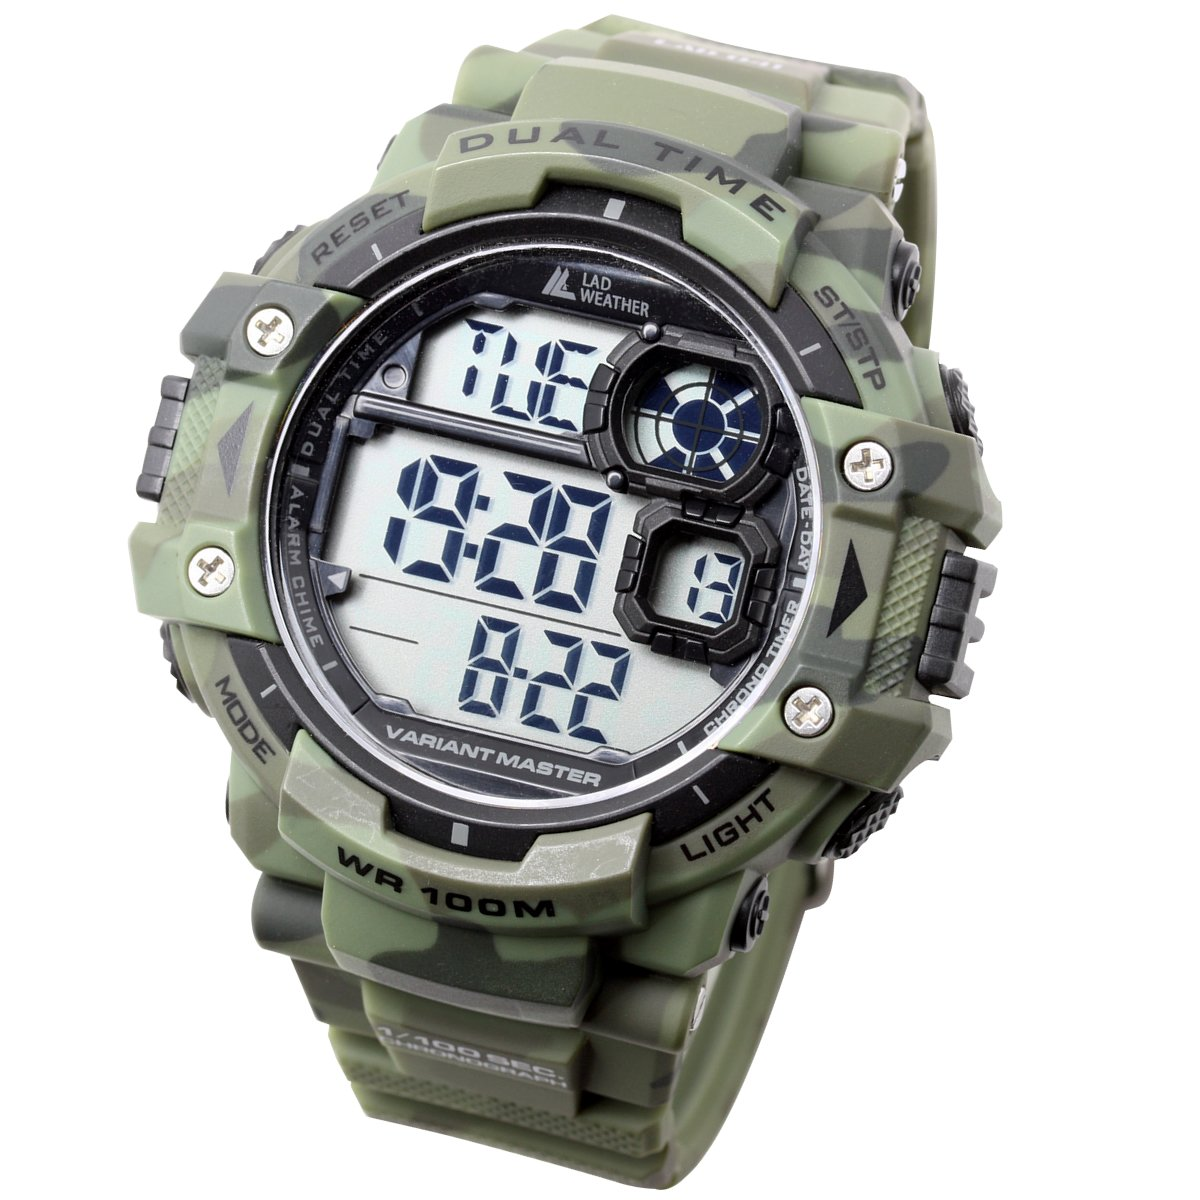 [LAD Weather] Dual time/100m Water Resistance/Stopwatch/Pacer Function/Digital Display/Military Watch/Camouflage